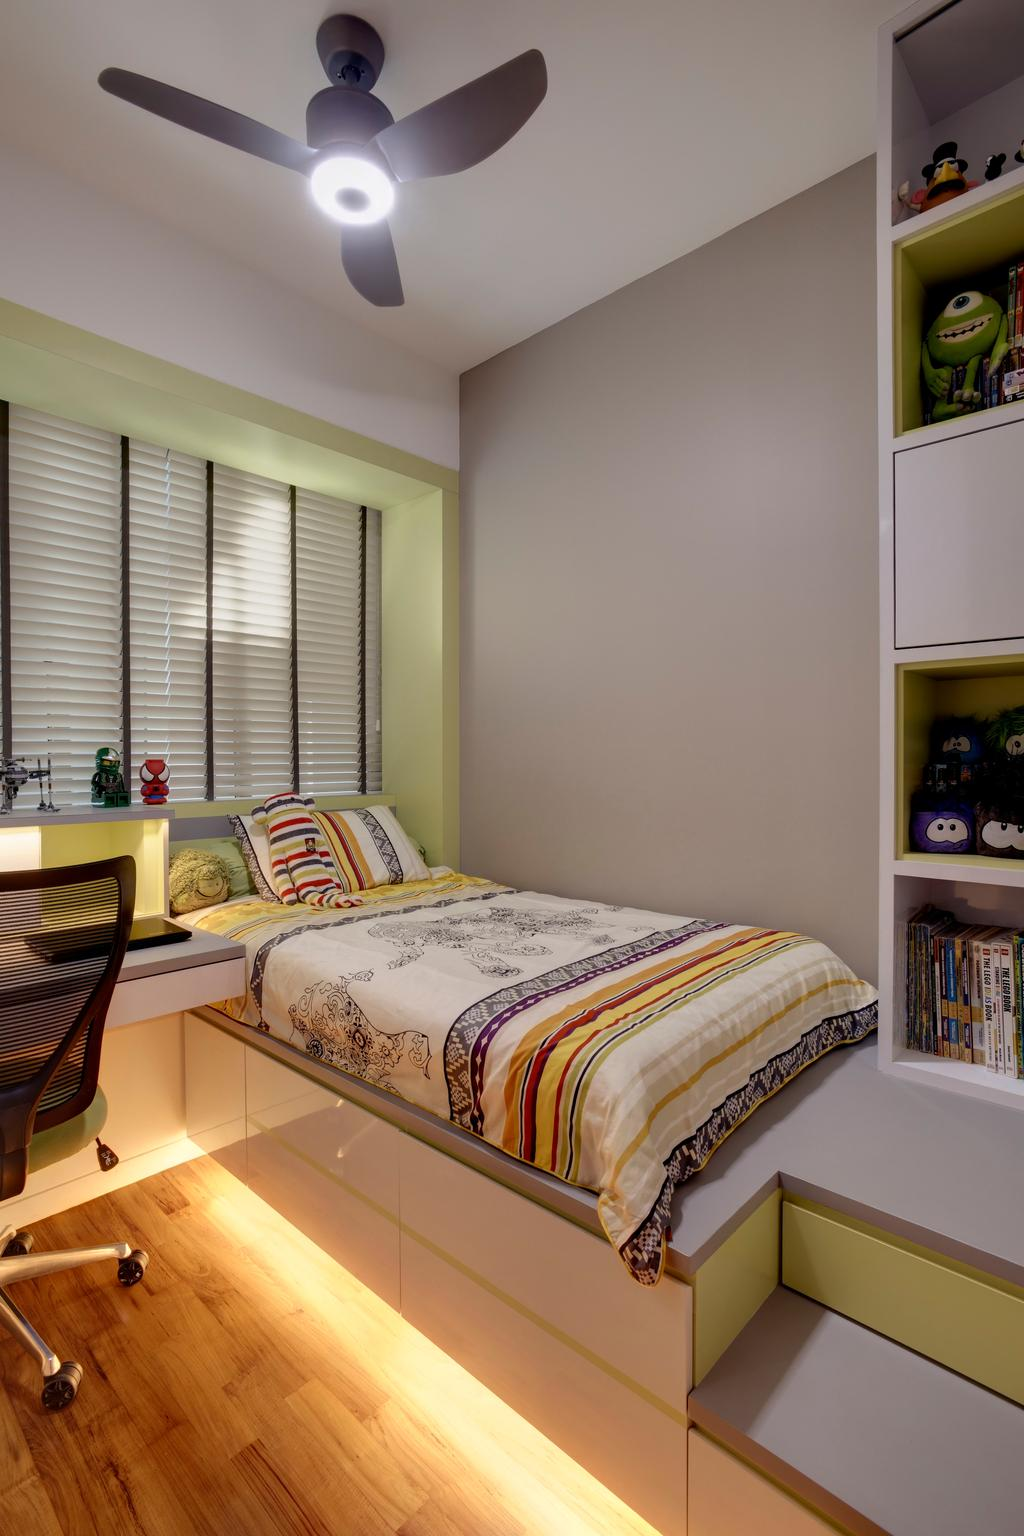 Contemporary, Condo, Bedroom, St. Patrick's Residences, Interior Designer, The Orange Cube, Ceiling Fan, Blinds, Bed Frame, Bed, Platform, Cove Lights, Study Desk, Croller Chairs, Shelving, Storage, White Board, Indoors, Interior Design, Room, Furniture, Chair